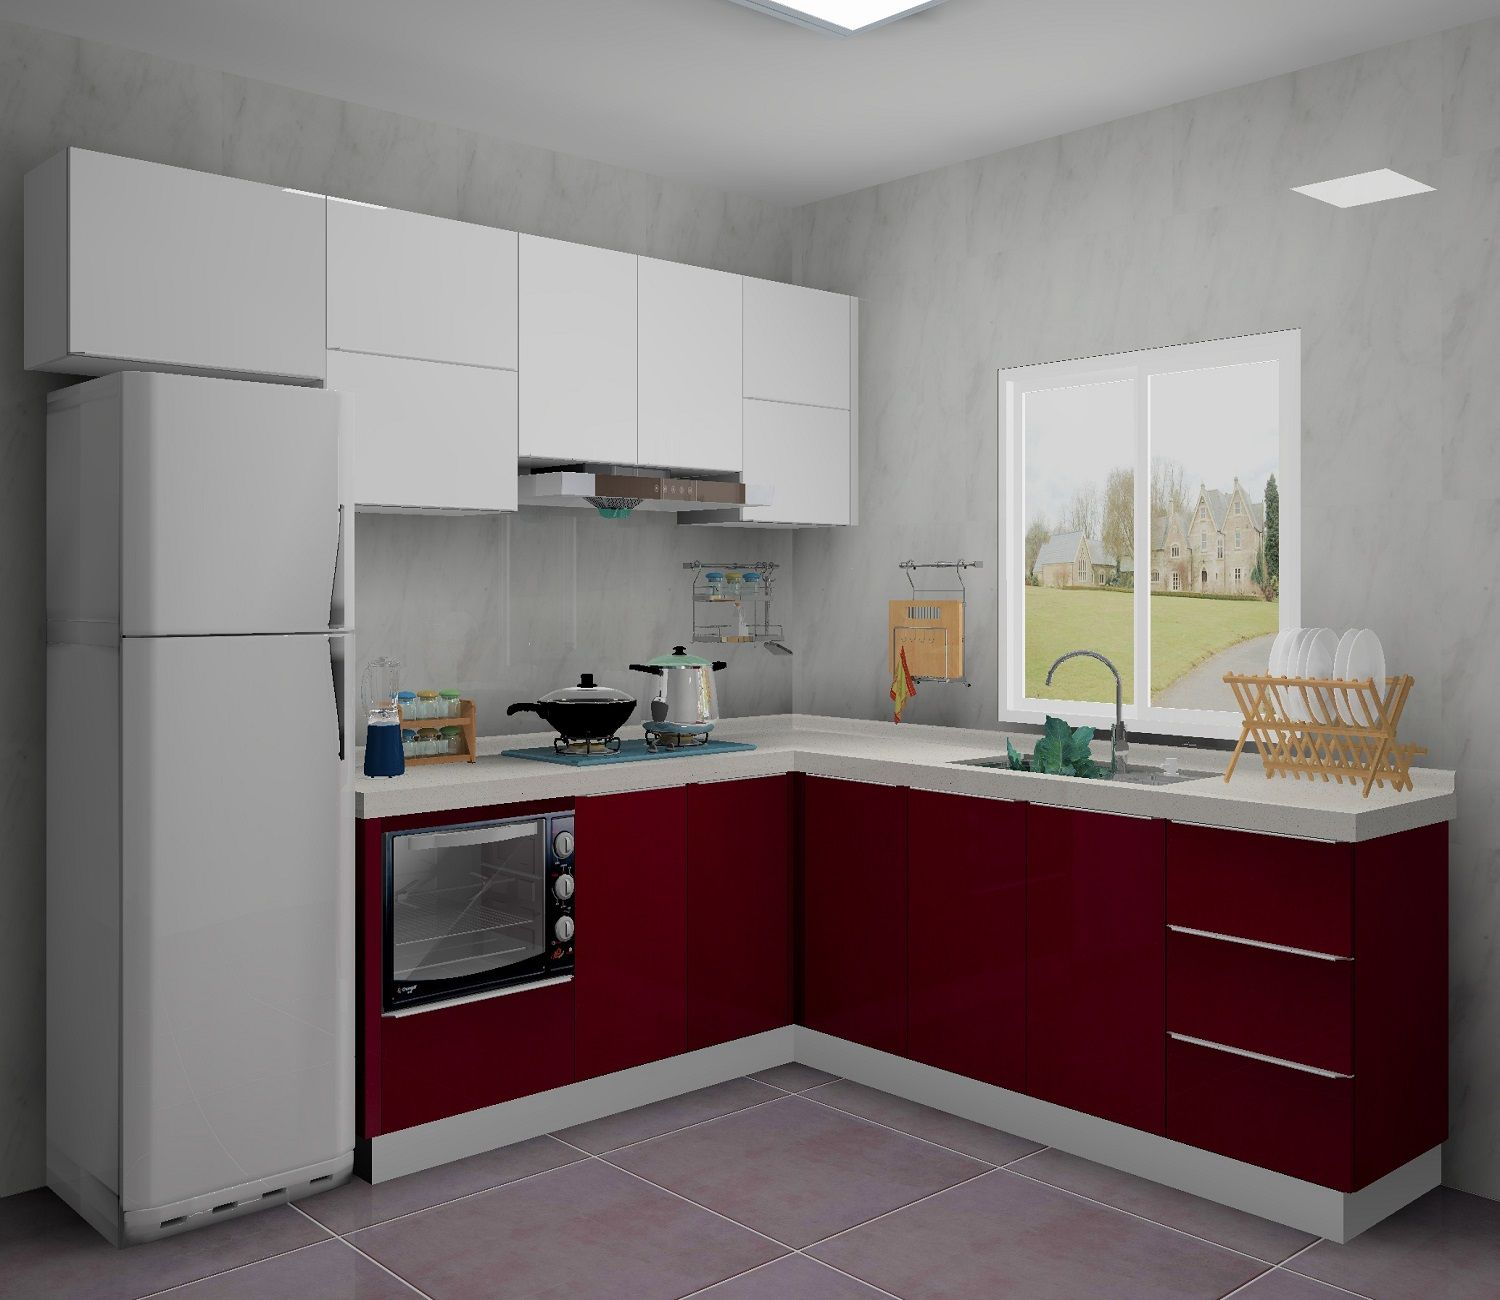 Design Your Kitchen Cabinets White Gloss This Kitchen Was Designed A White And Red Combination Color Which Can Make The High Gloss Kitchen Cabinets Gloss Kitchen Cabinets Kitchen Cabinets